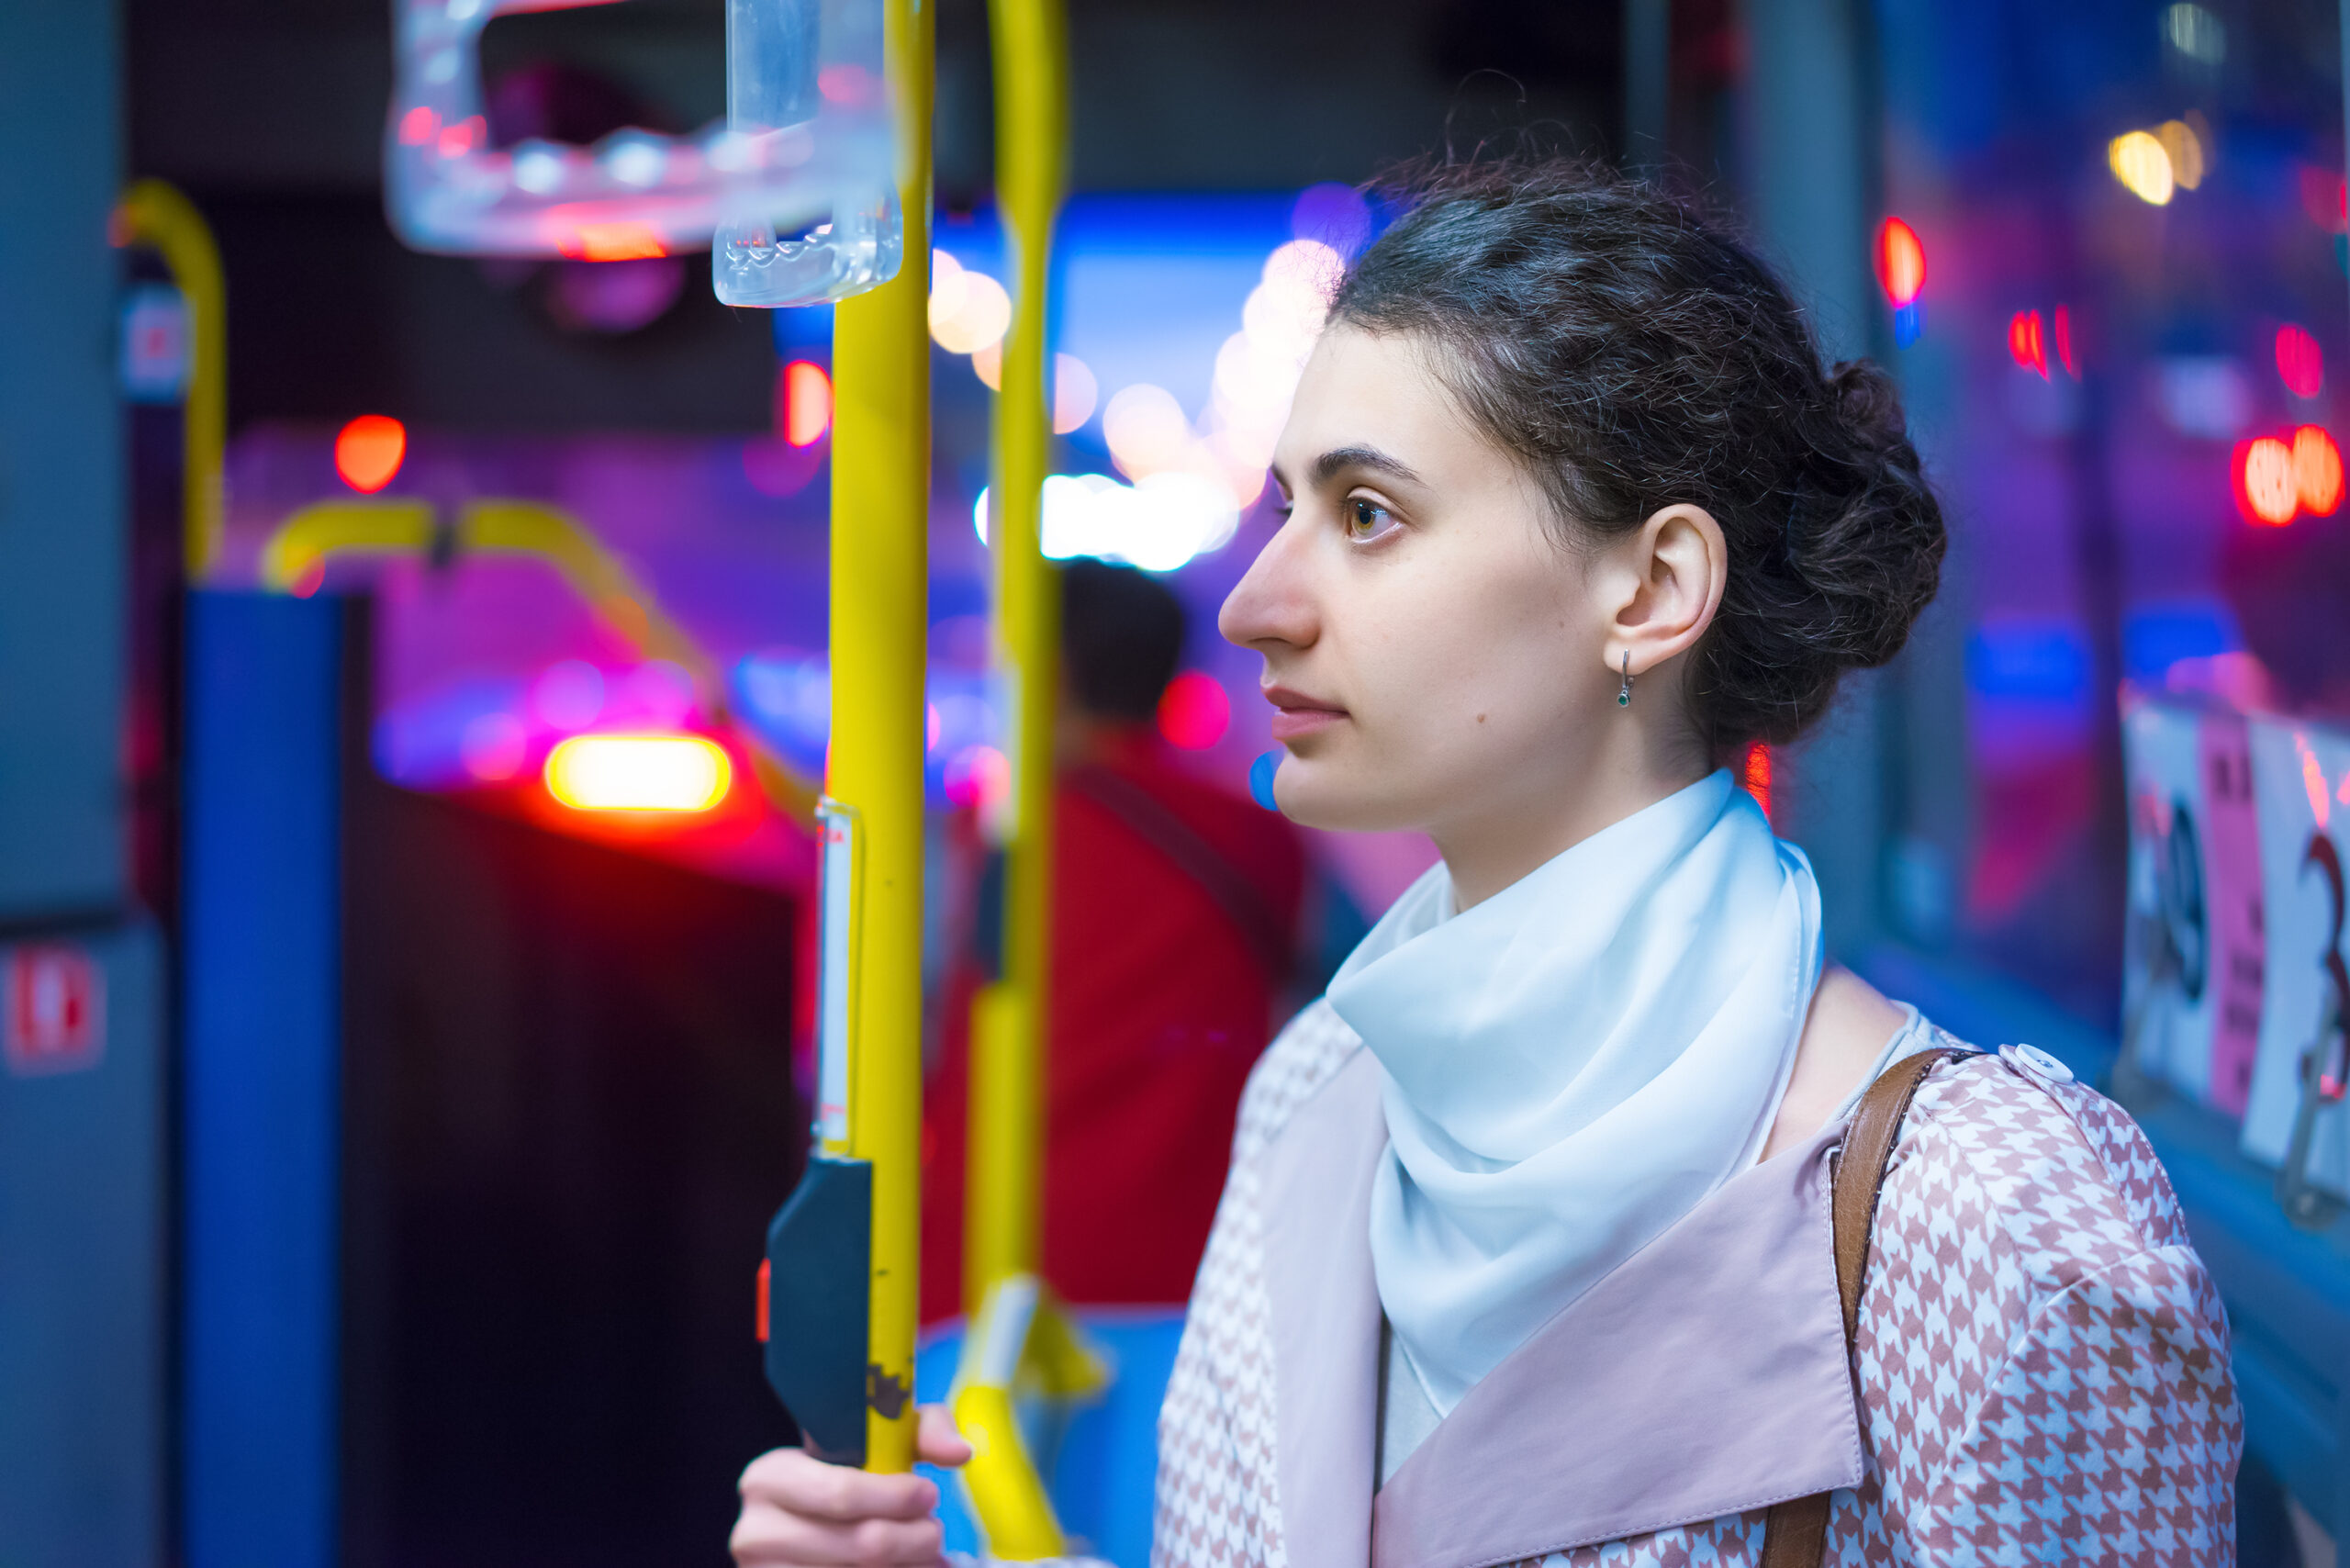 Woman on bus at night